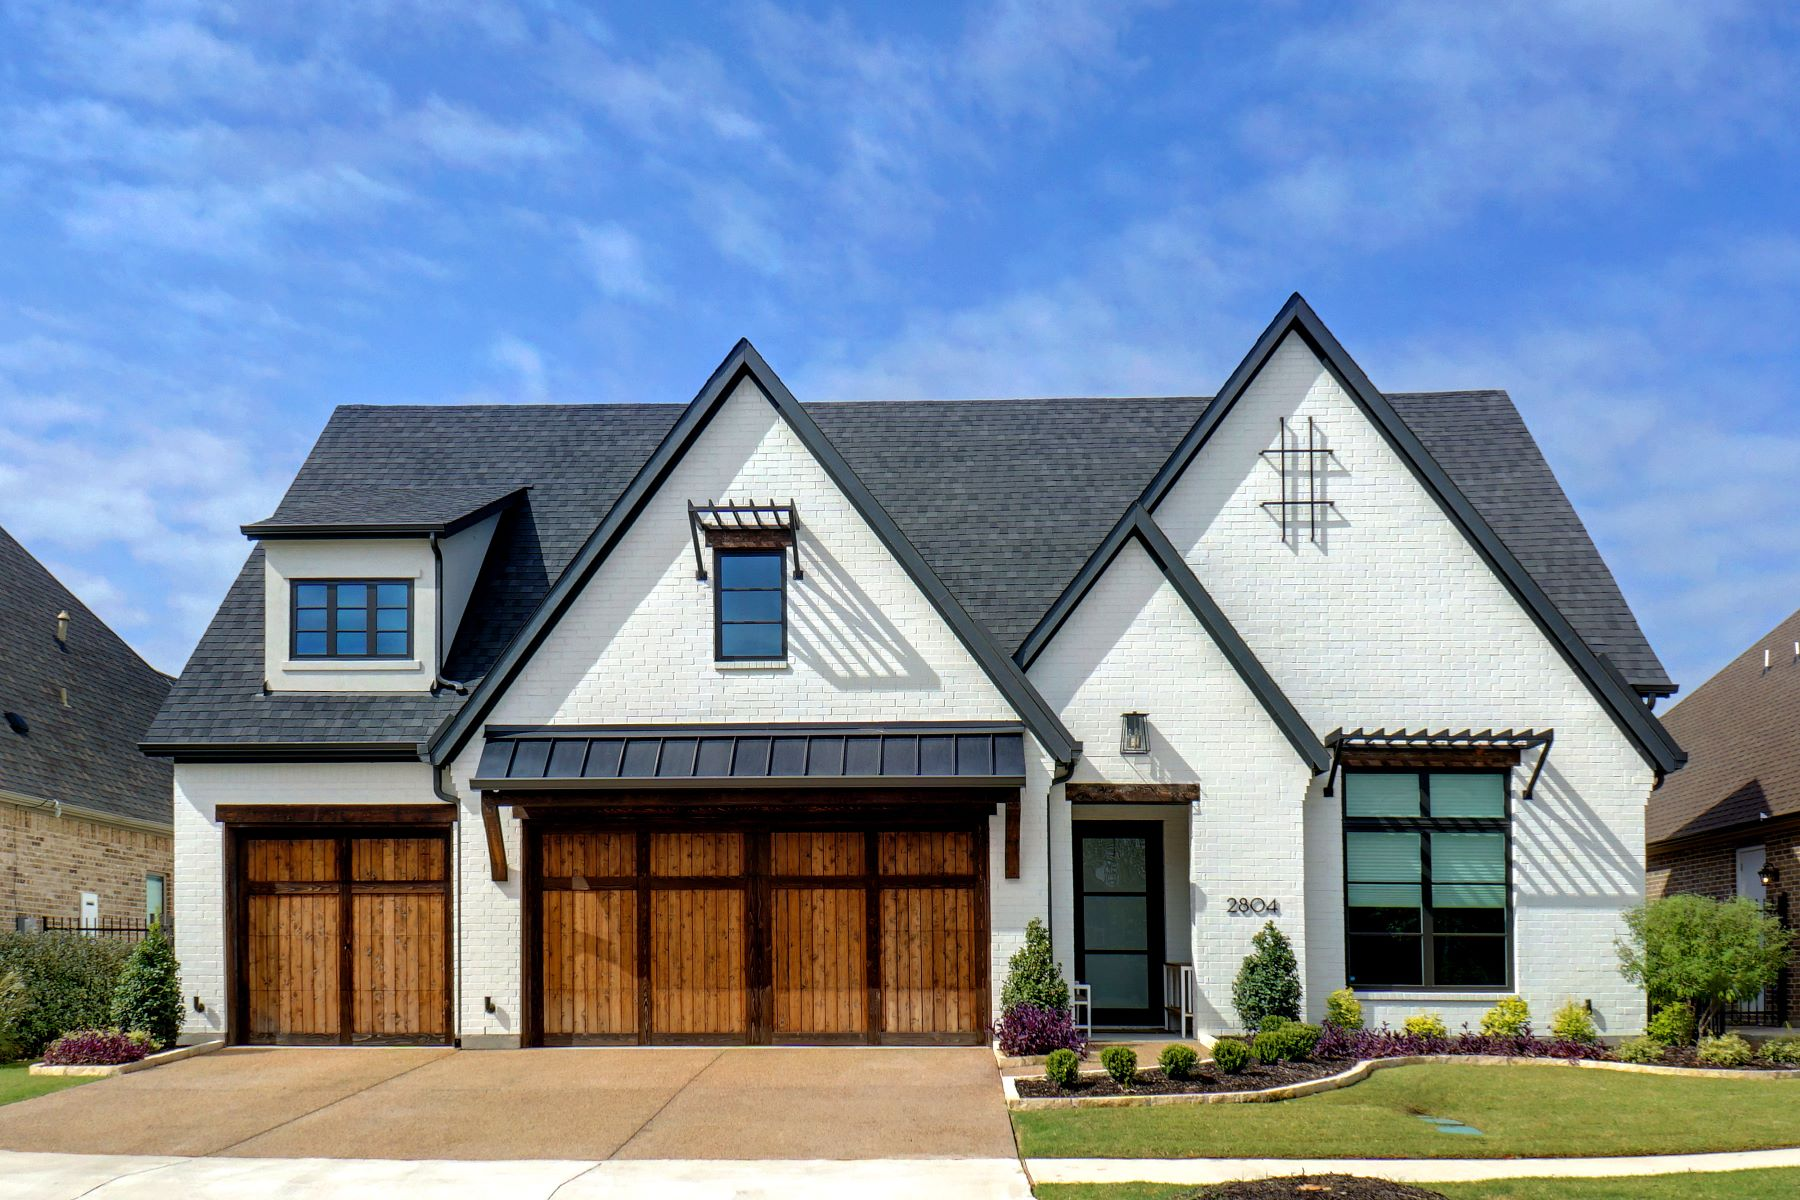 Single Family Homes for Sale at No Expense Spared in Modern Home 2804 Riverbrook Way Southlake, Texas 76092 United States